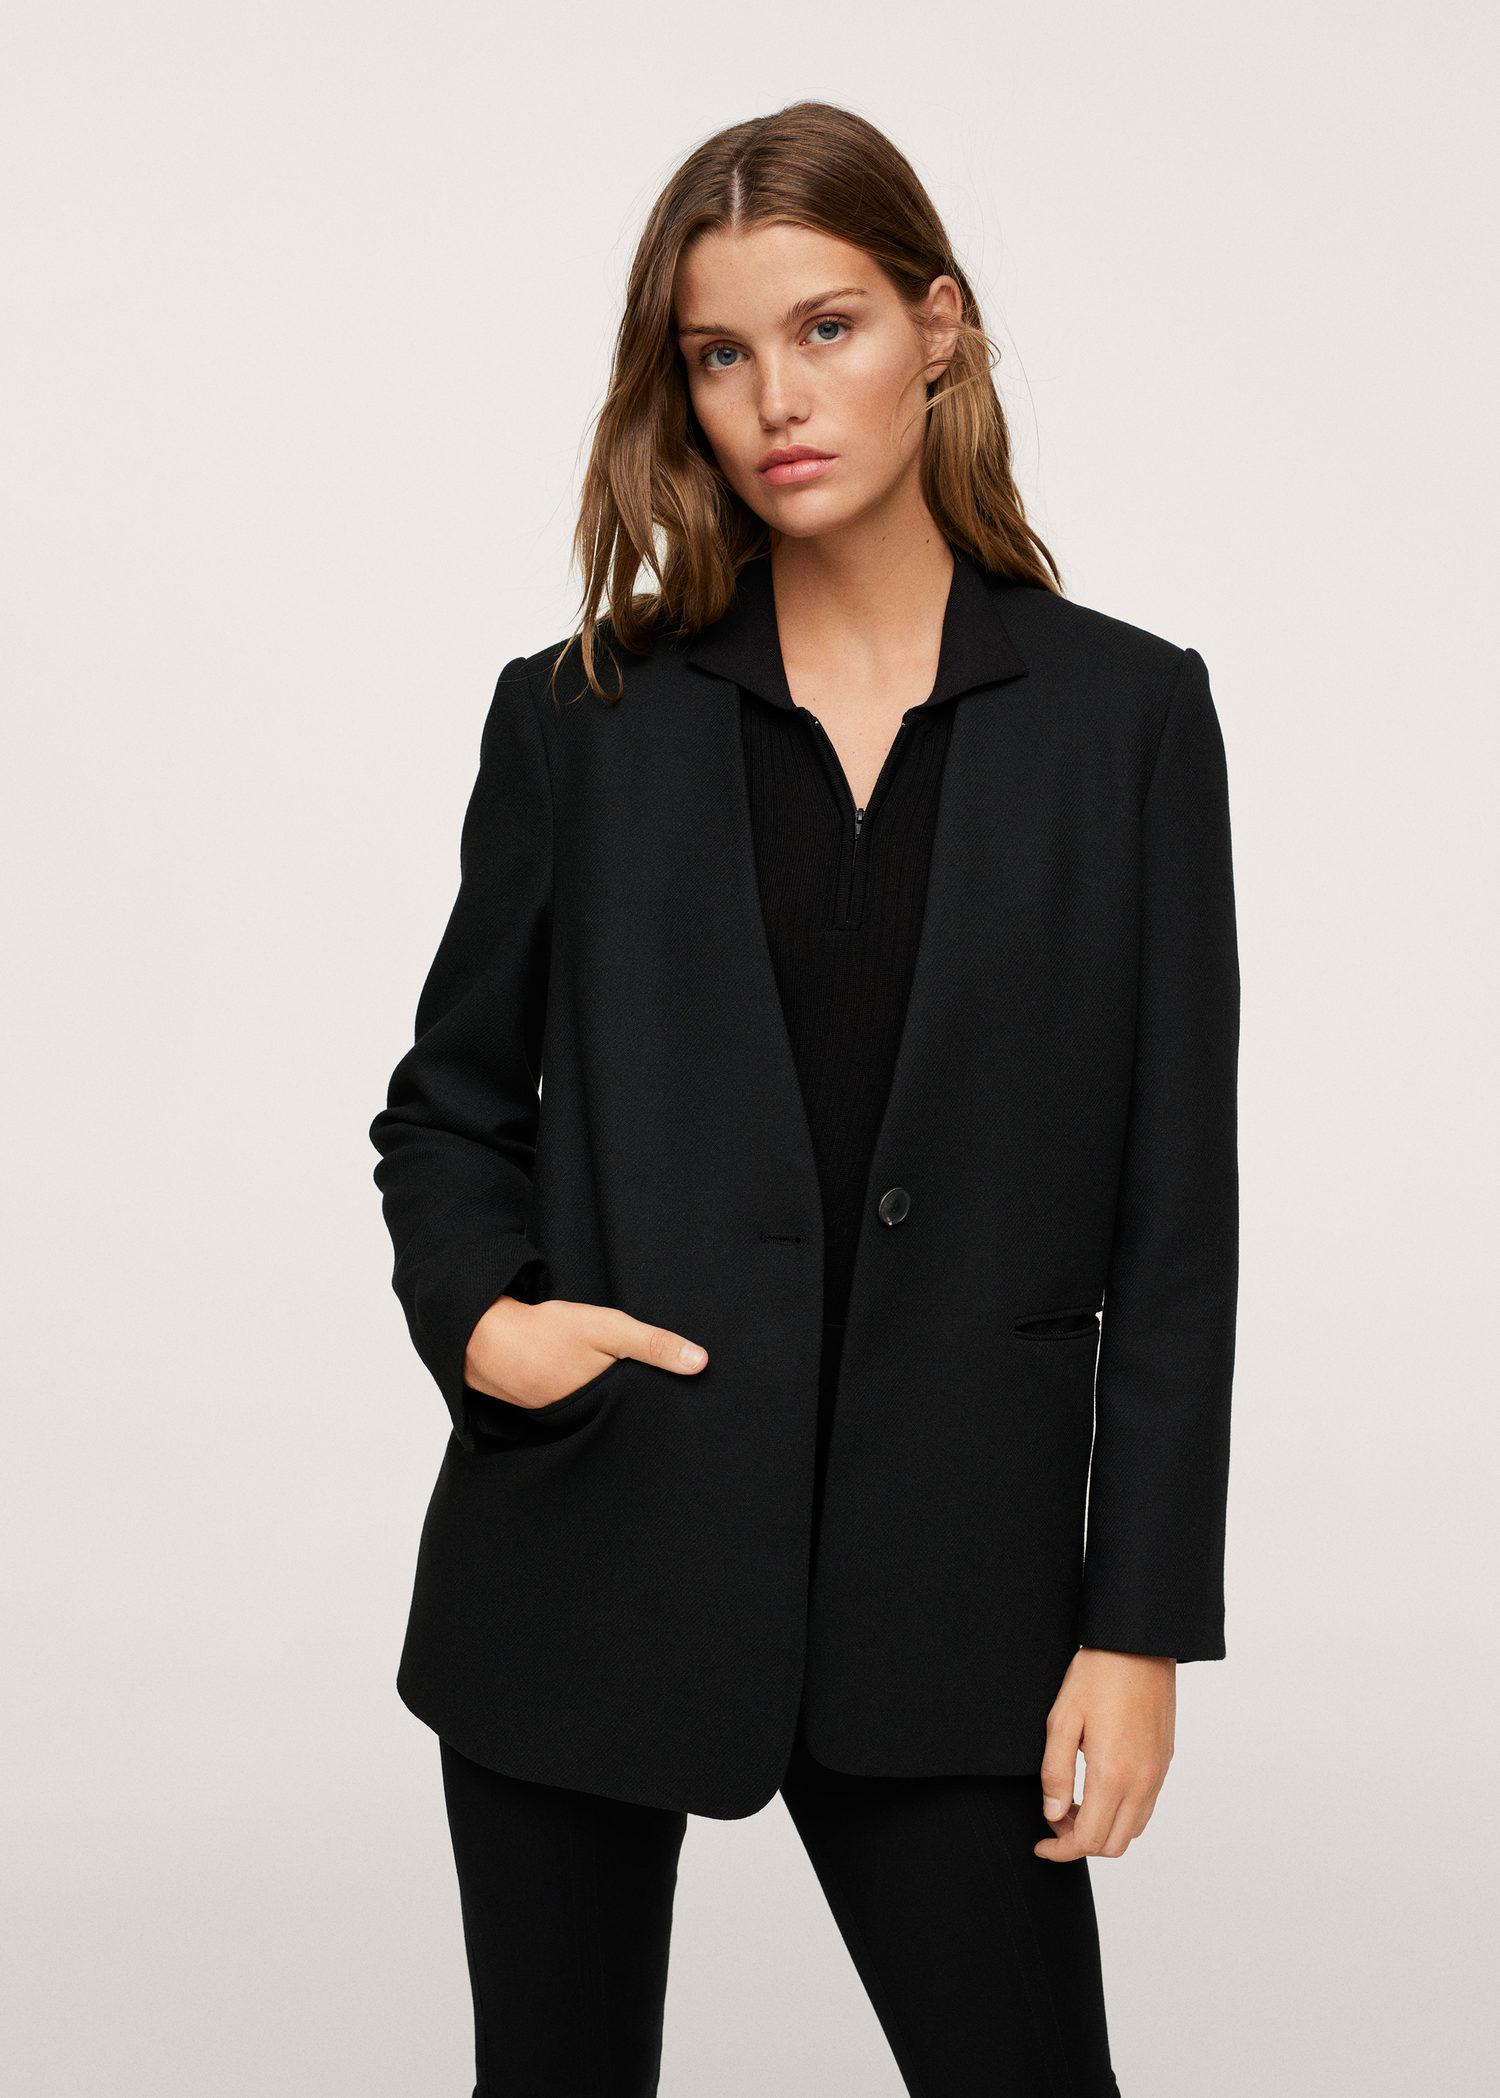 Structured blazer without lapels